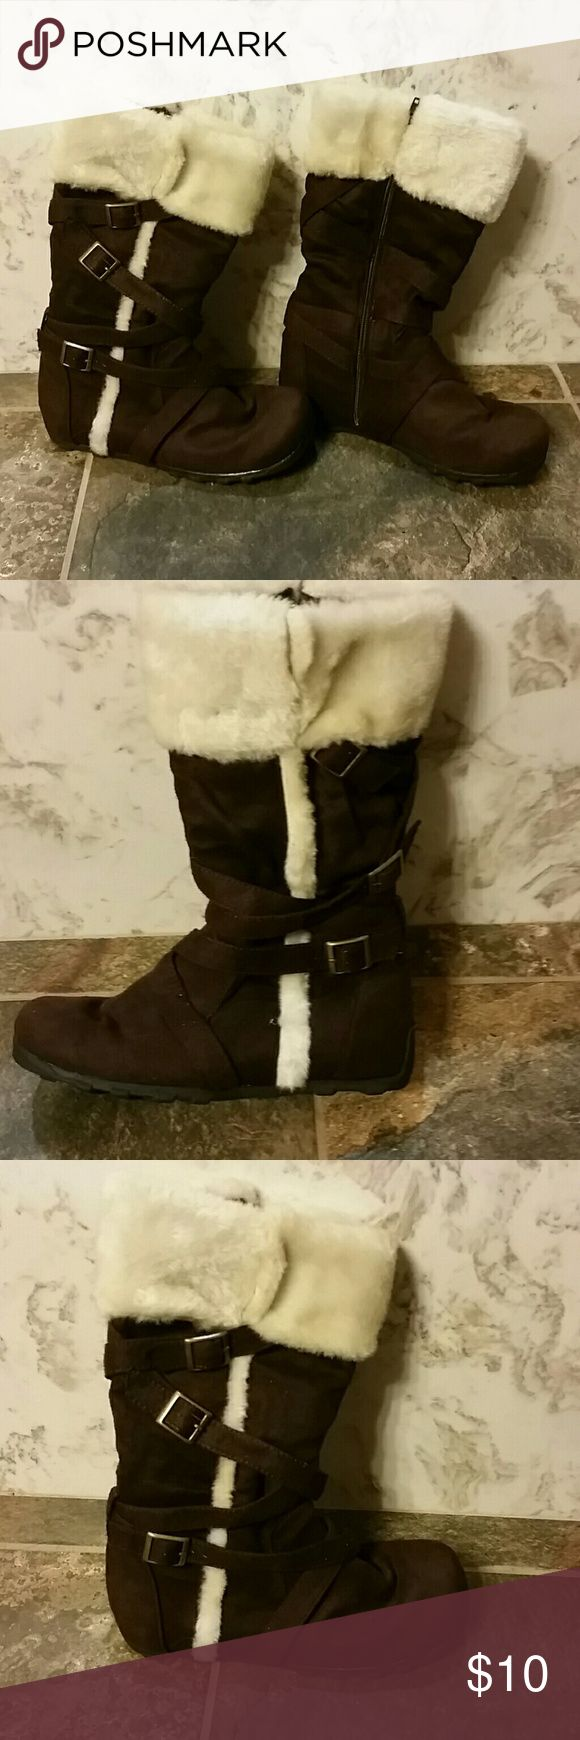 Brown boots with faux fur These are brown boots with faux fur accents. They have zippers which are intact and working. Lightly worn. The boots are a girls size 4, but I was able to wear them and I am a woman's shoe size 6. Shoes Boots